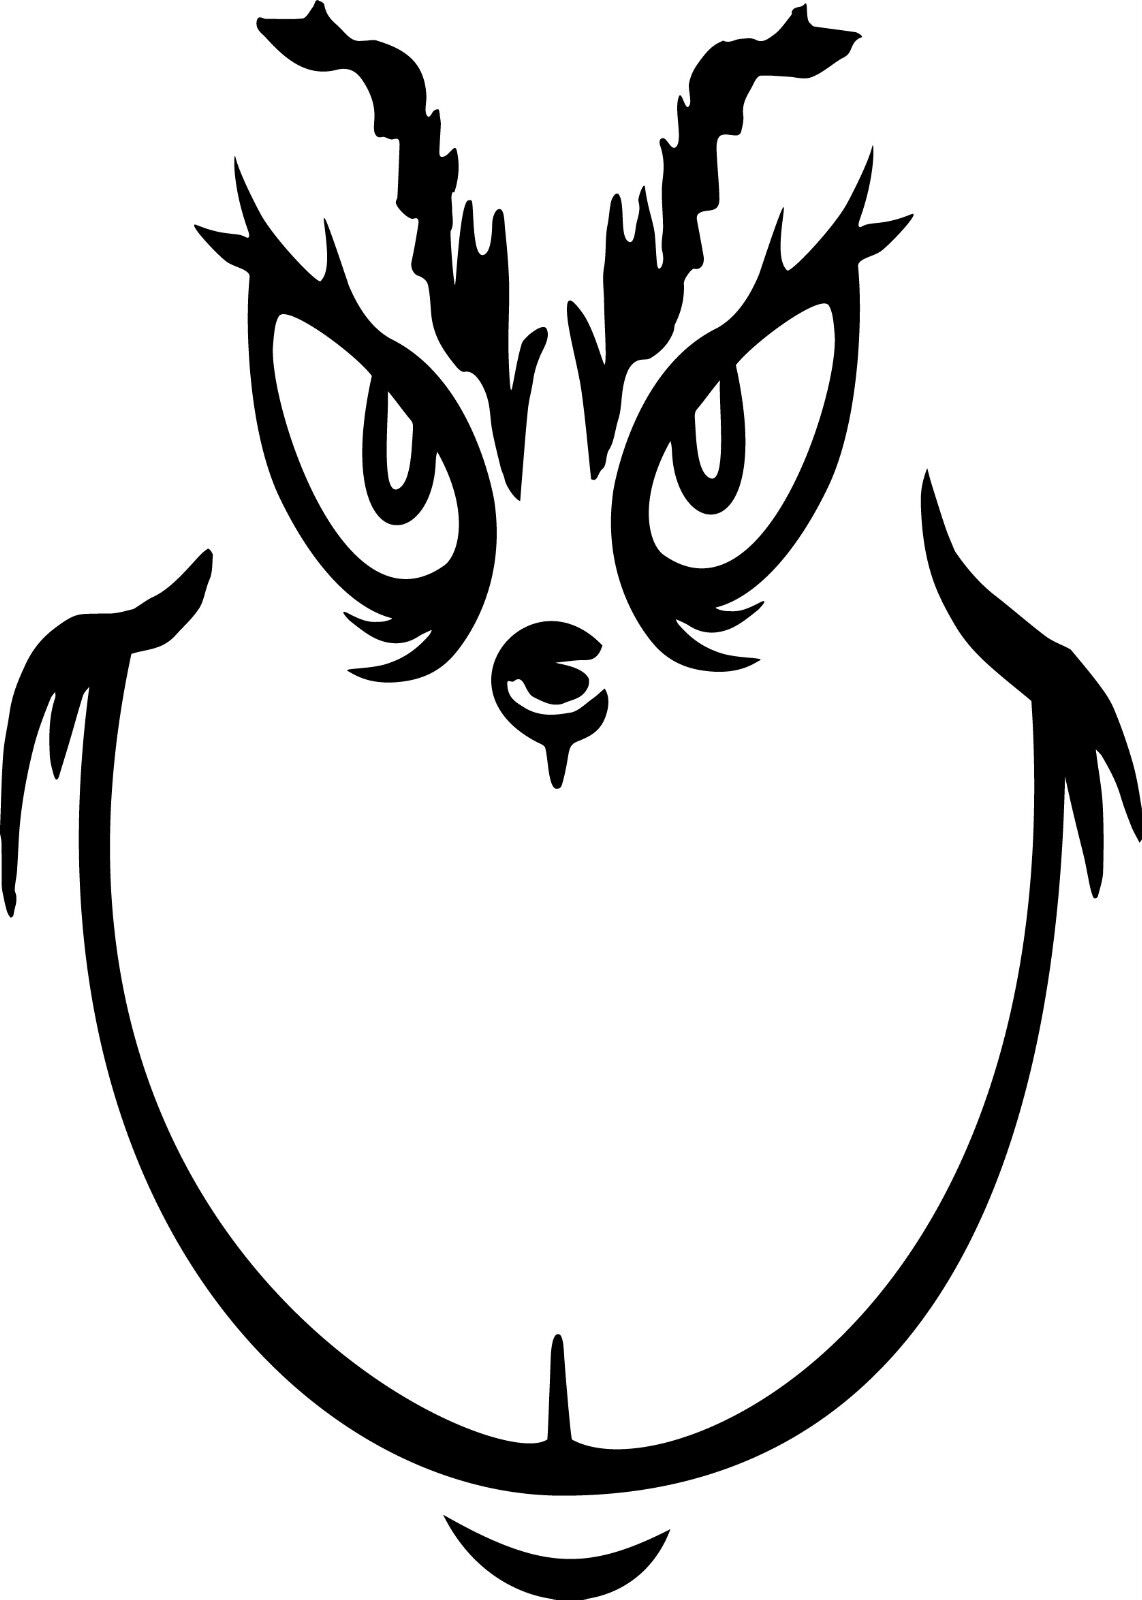 Home Decoration - Vinyl Decal Grinch Face! Calendared Vinyl, Various colors and sizes!